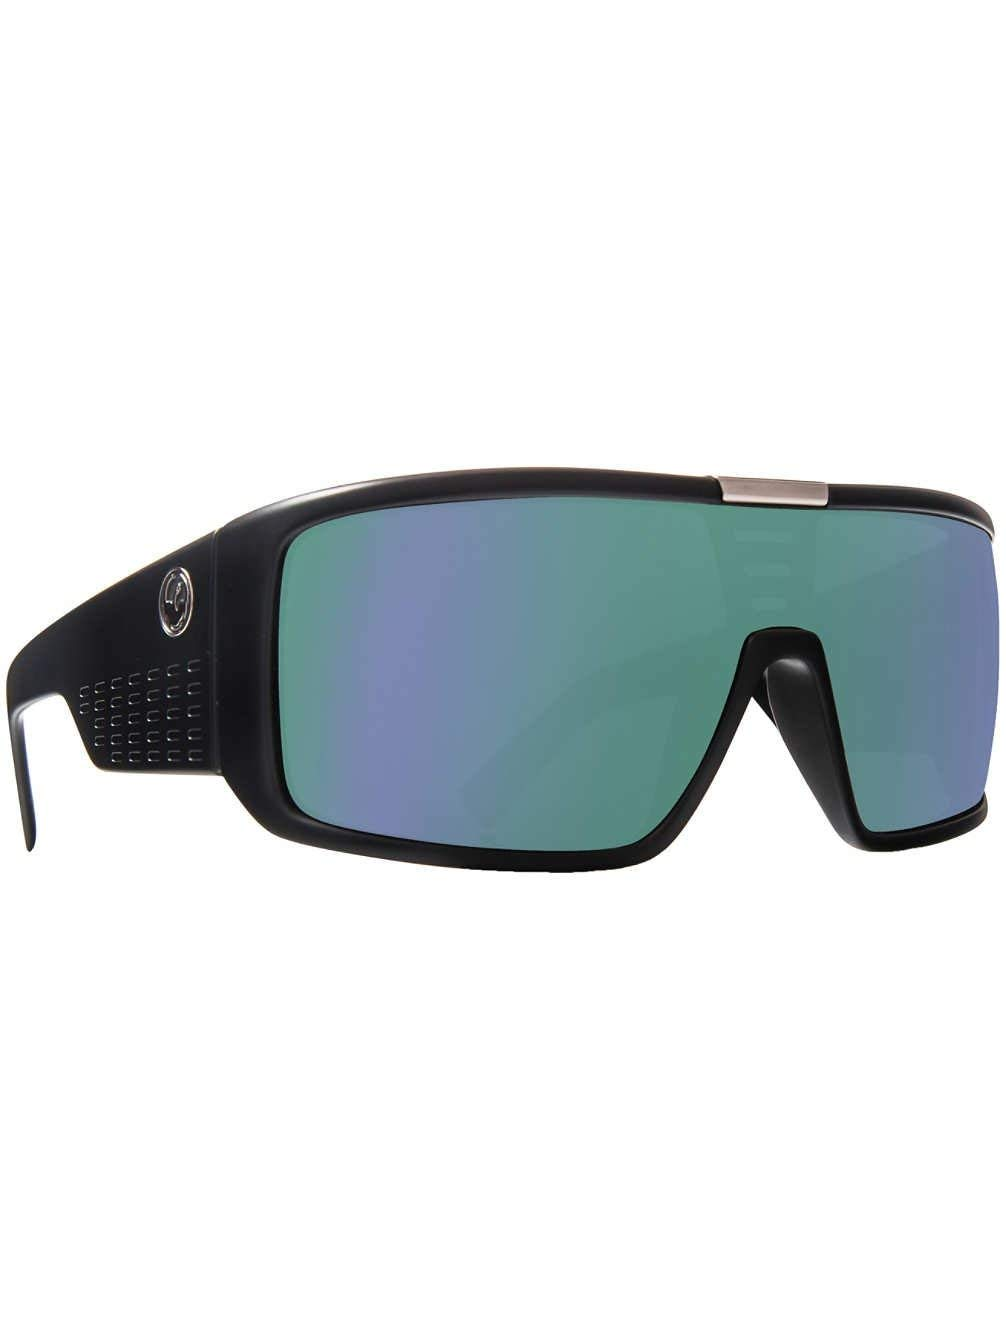 7b9a18a214 Get Quotations · Dragon Alliance Domo Matte Black Frame with Green Ion Lens  Sunglasses